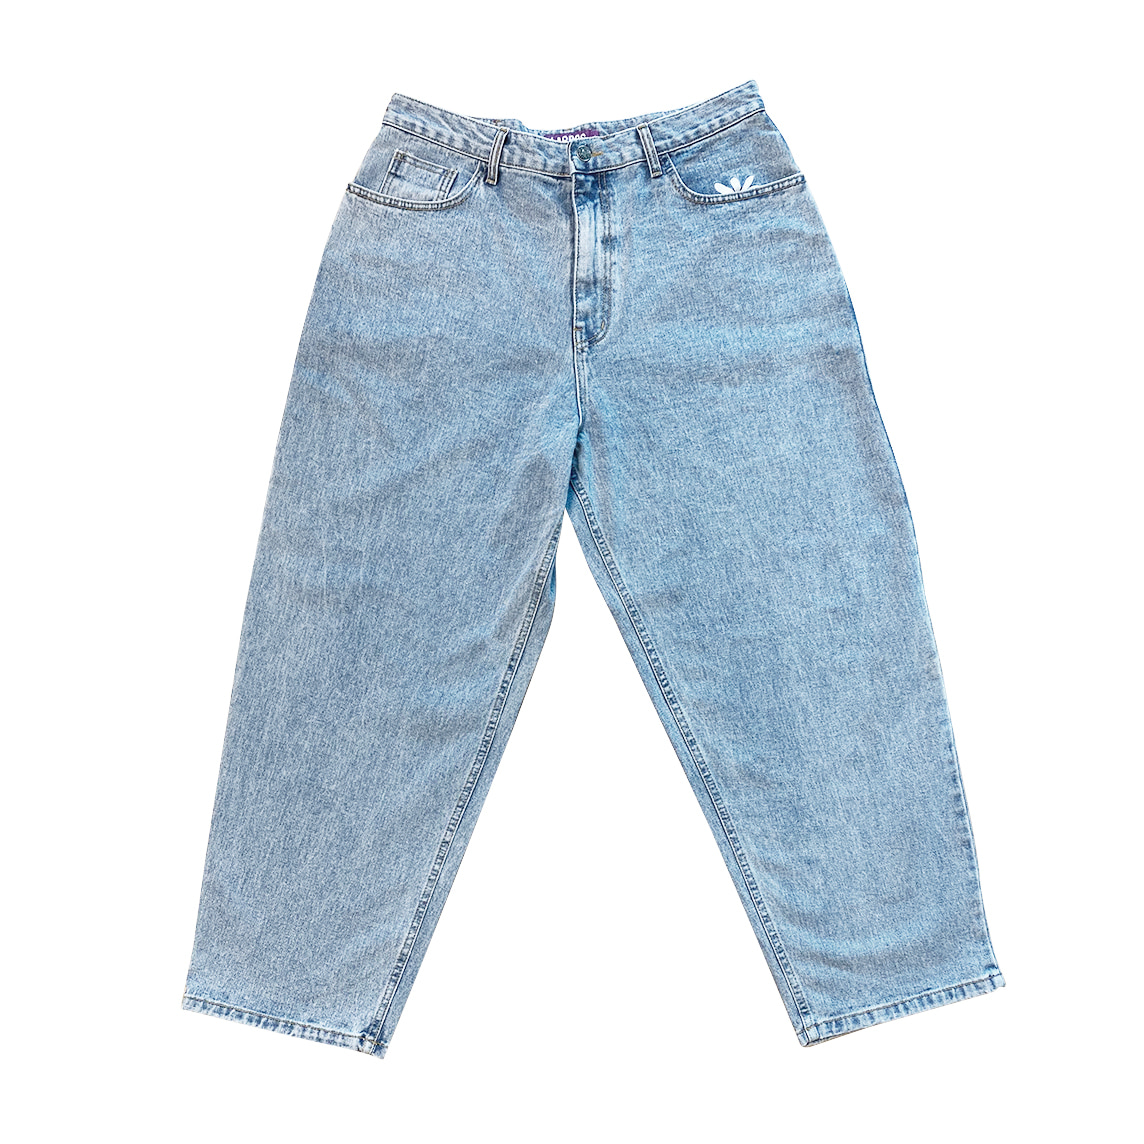 Stone Washed Smart Daisy Jeans (Light Indigo)